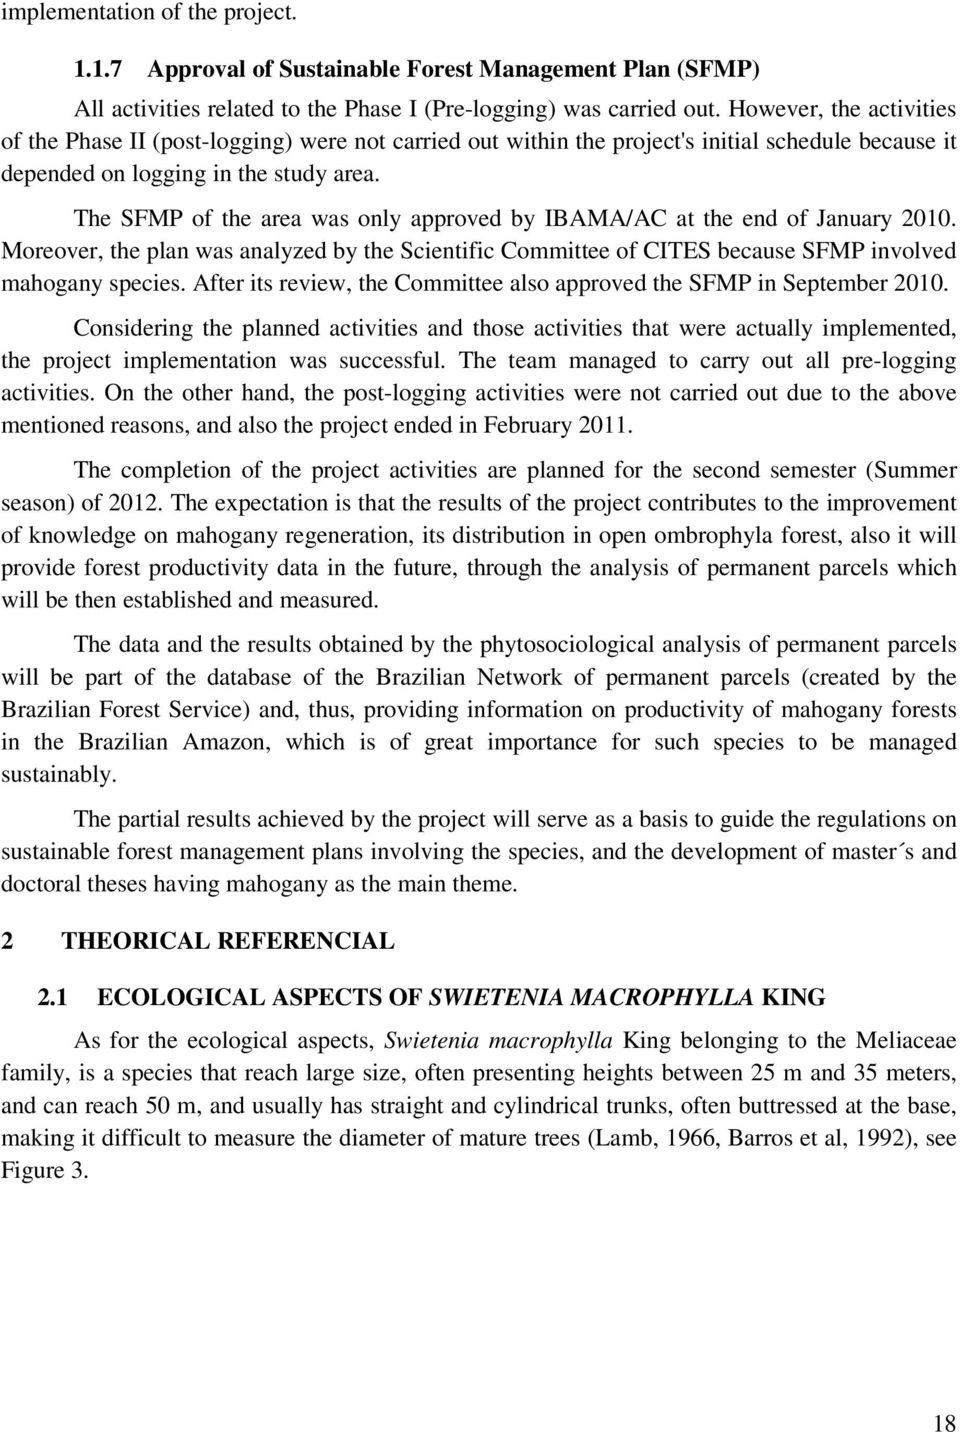 The SFMP of the area was only approved by IBAMA/AC at the end of January 2010. Moreover, the plan was analyzed by the Scientific Committee of CITES because SFMP involved mahogany species.